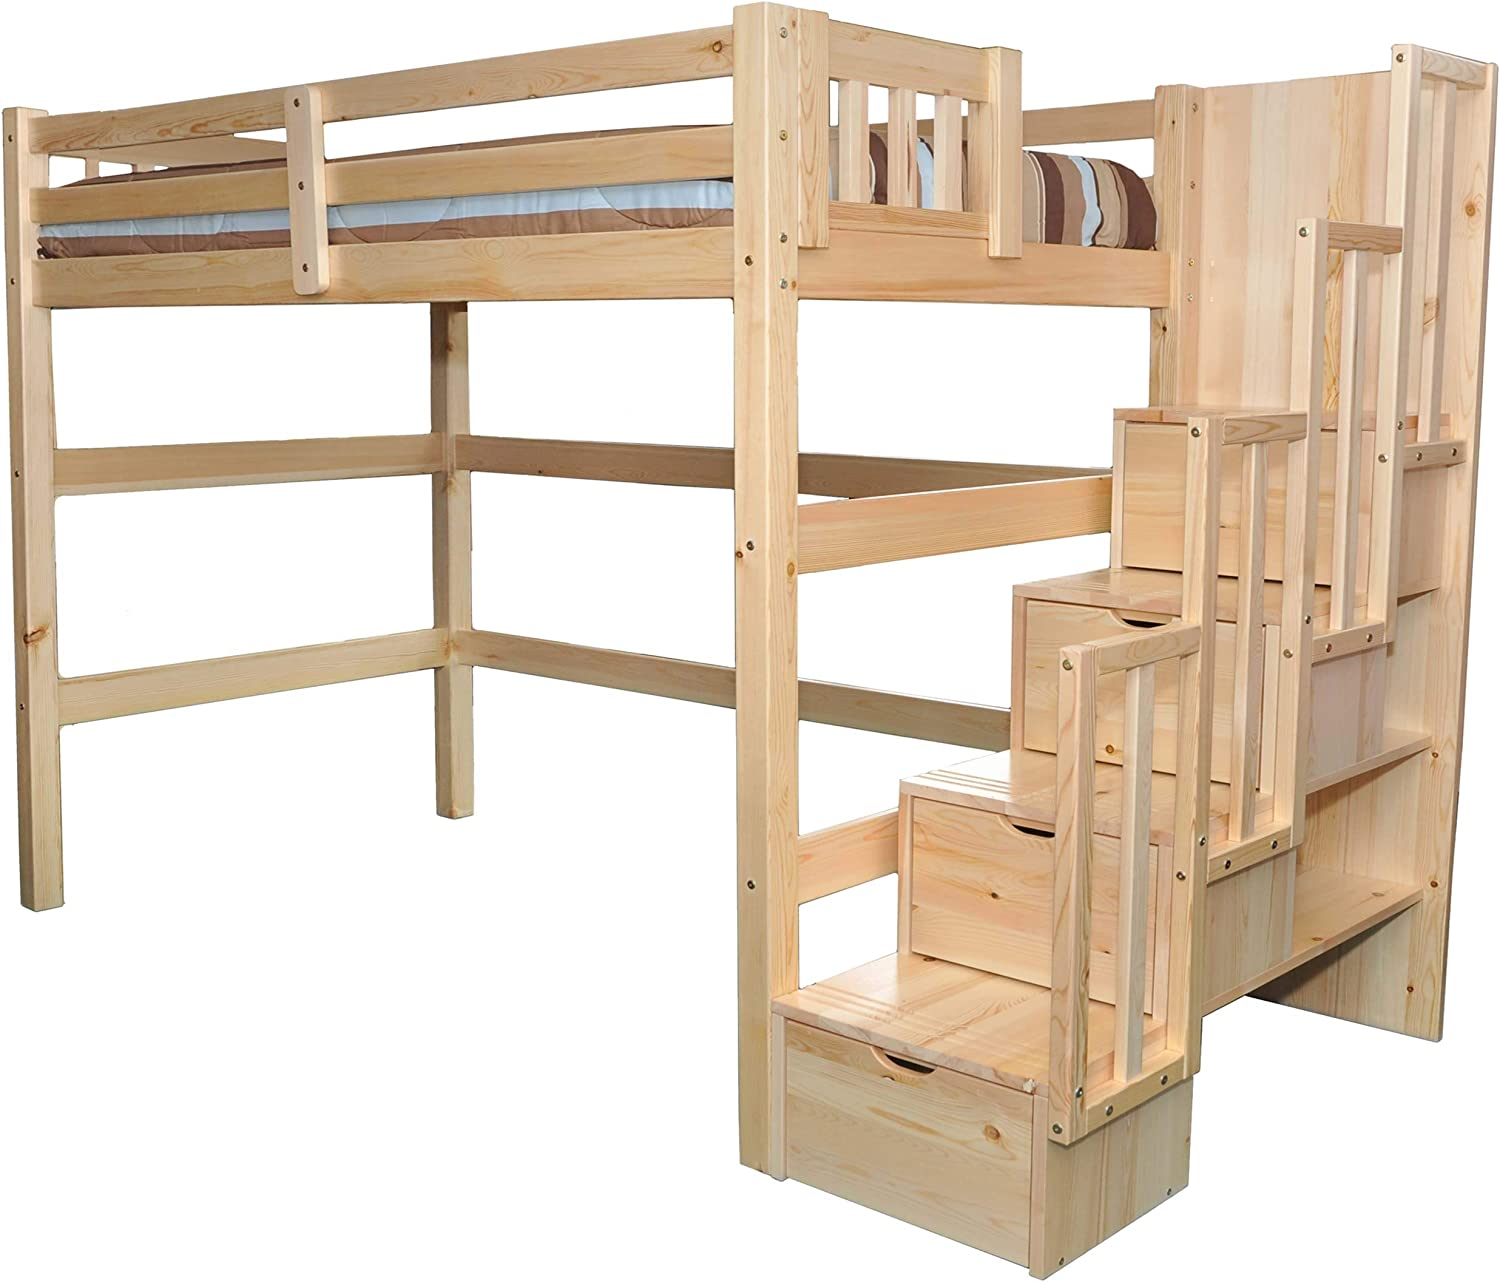 Amazon Com Scanica Stairway Full Loft Bed With Storage Natural Furniture Decor